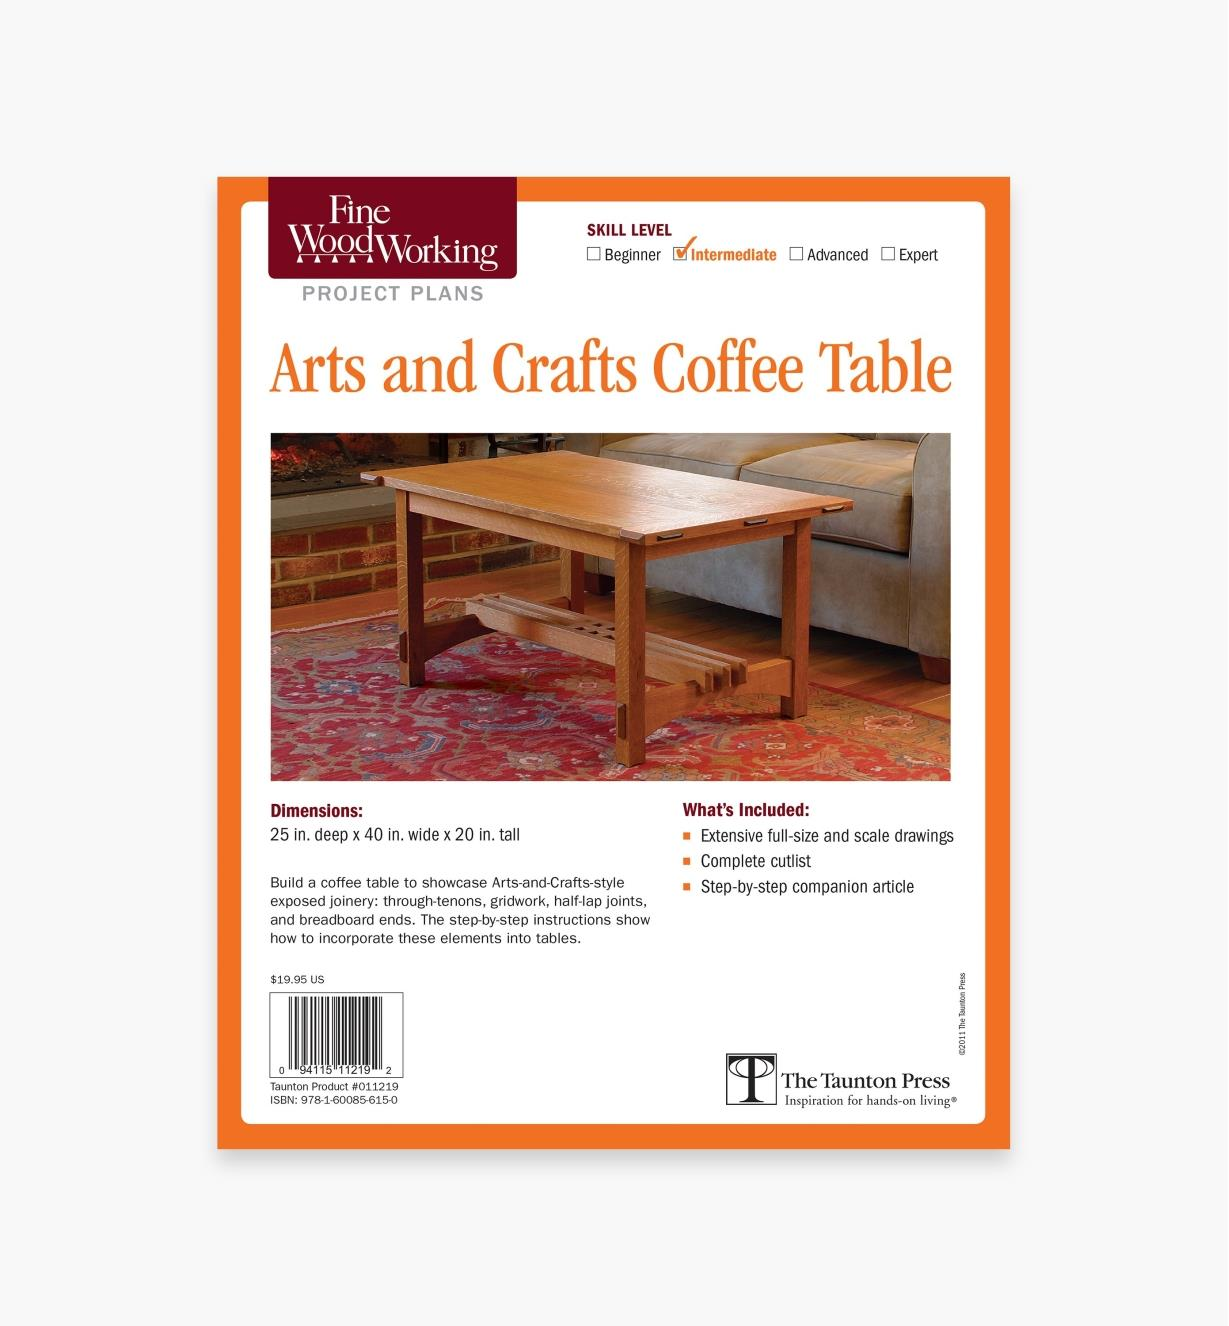 73L2523 - Arts and Crafts Coffee Table Plan